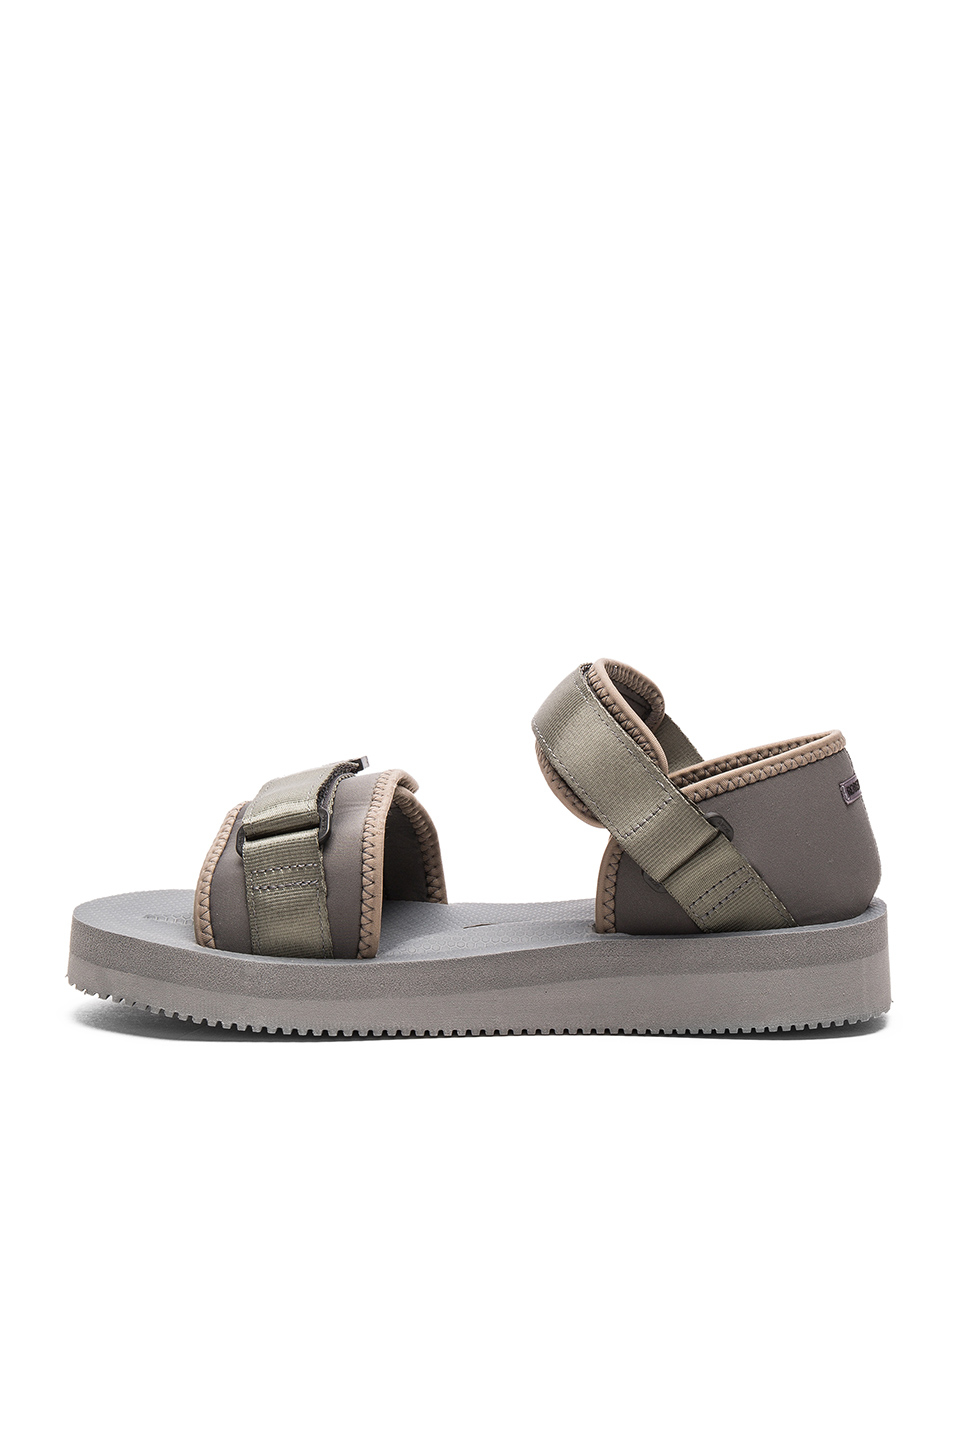 d0ff7bf5a96 Robert Geller X Suicoke Sandal in Gray for Men - Lyst